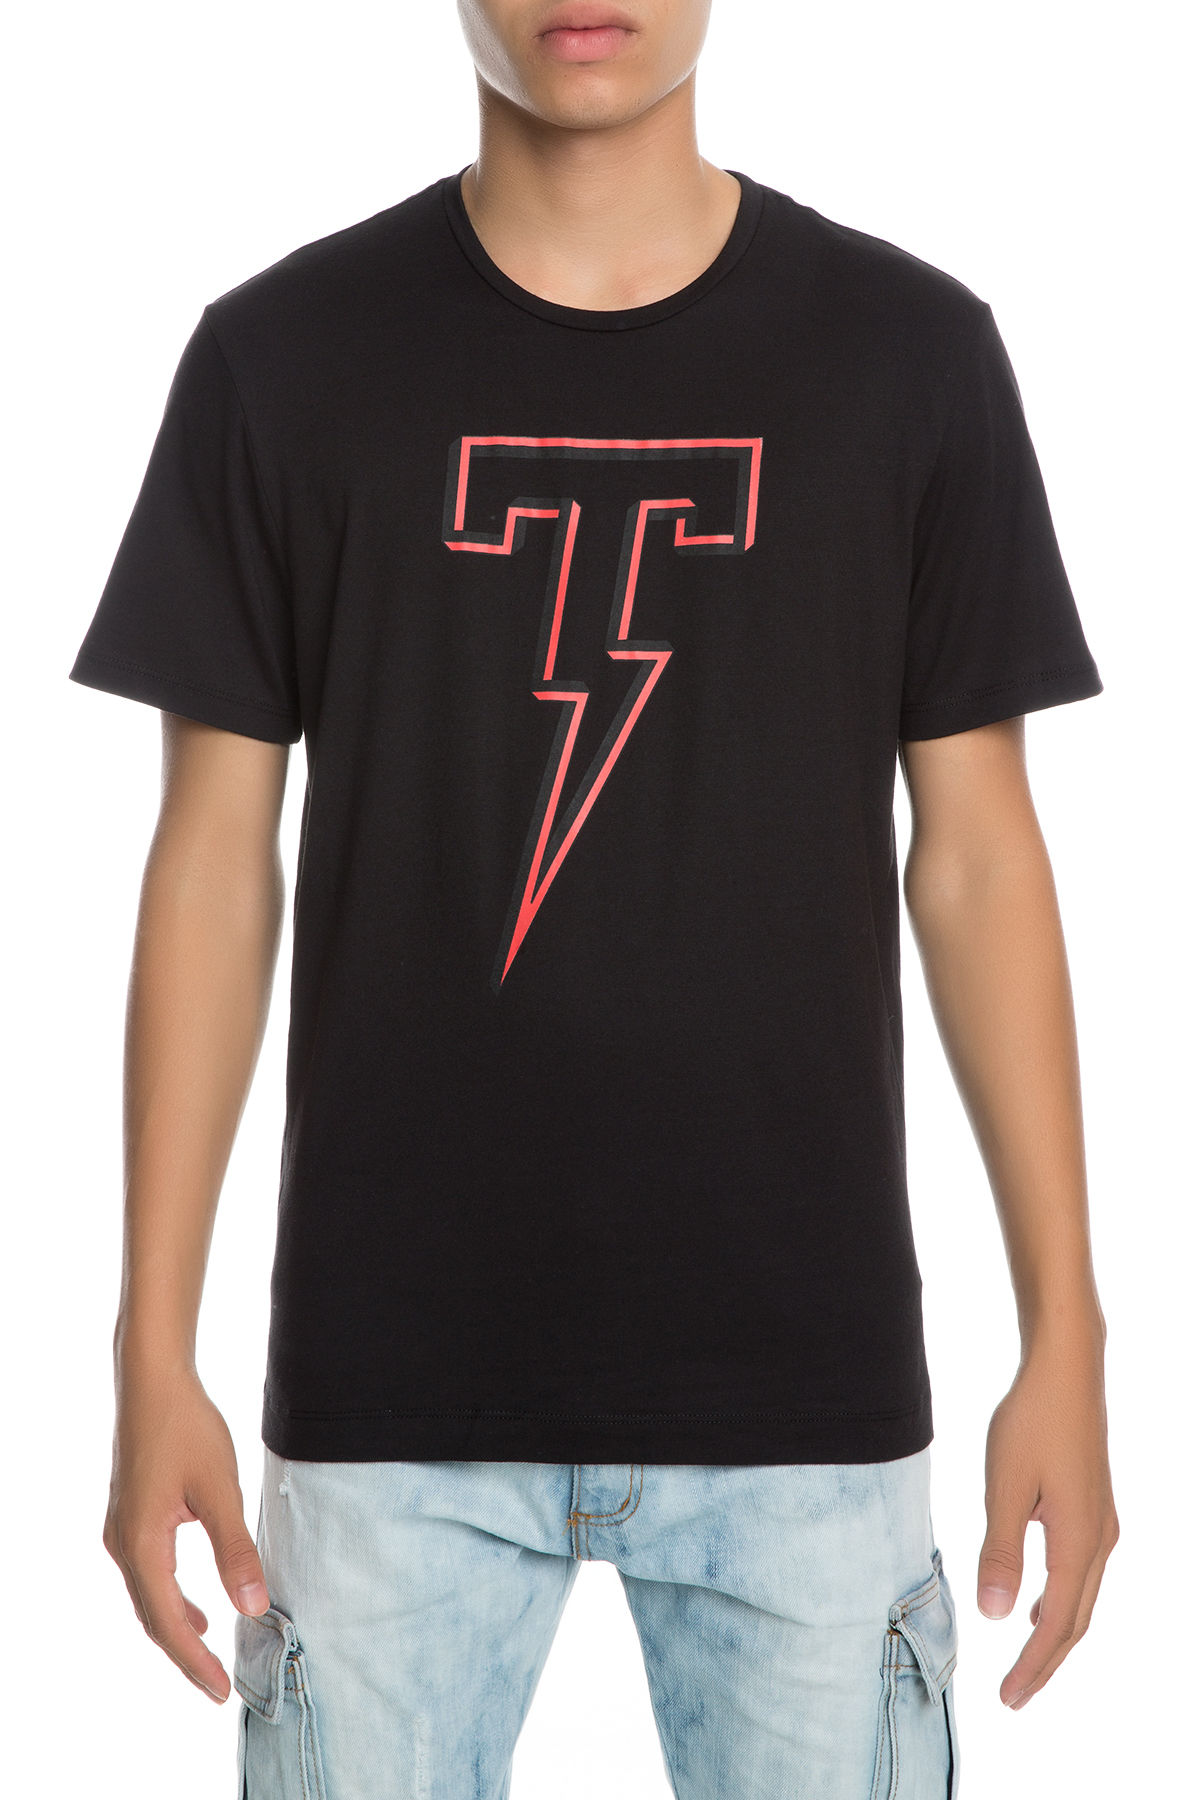 Image of The Shadowbox Short Sleeve Tee in Black